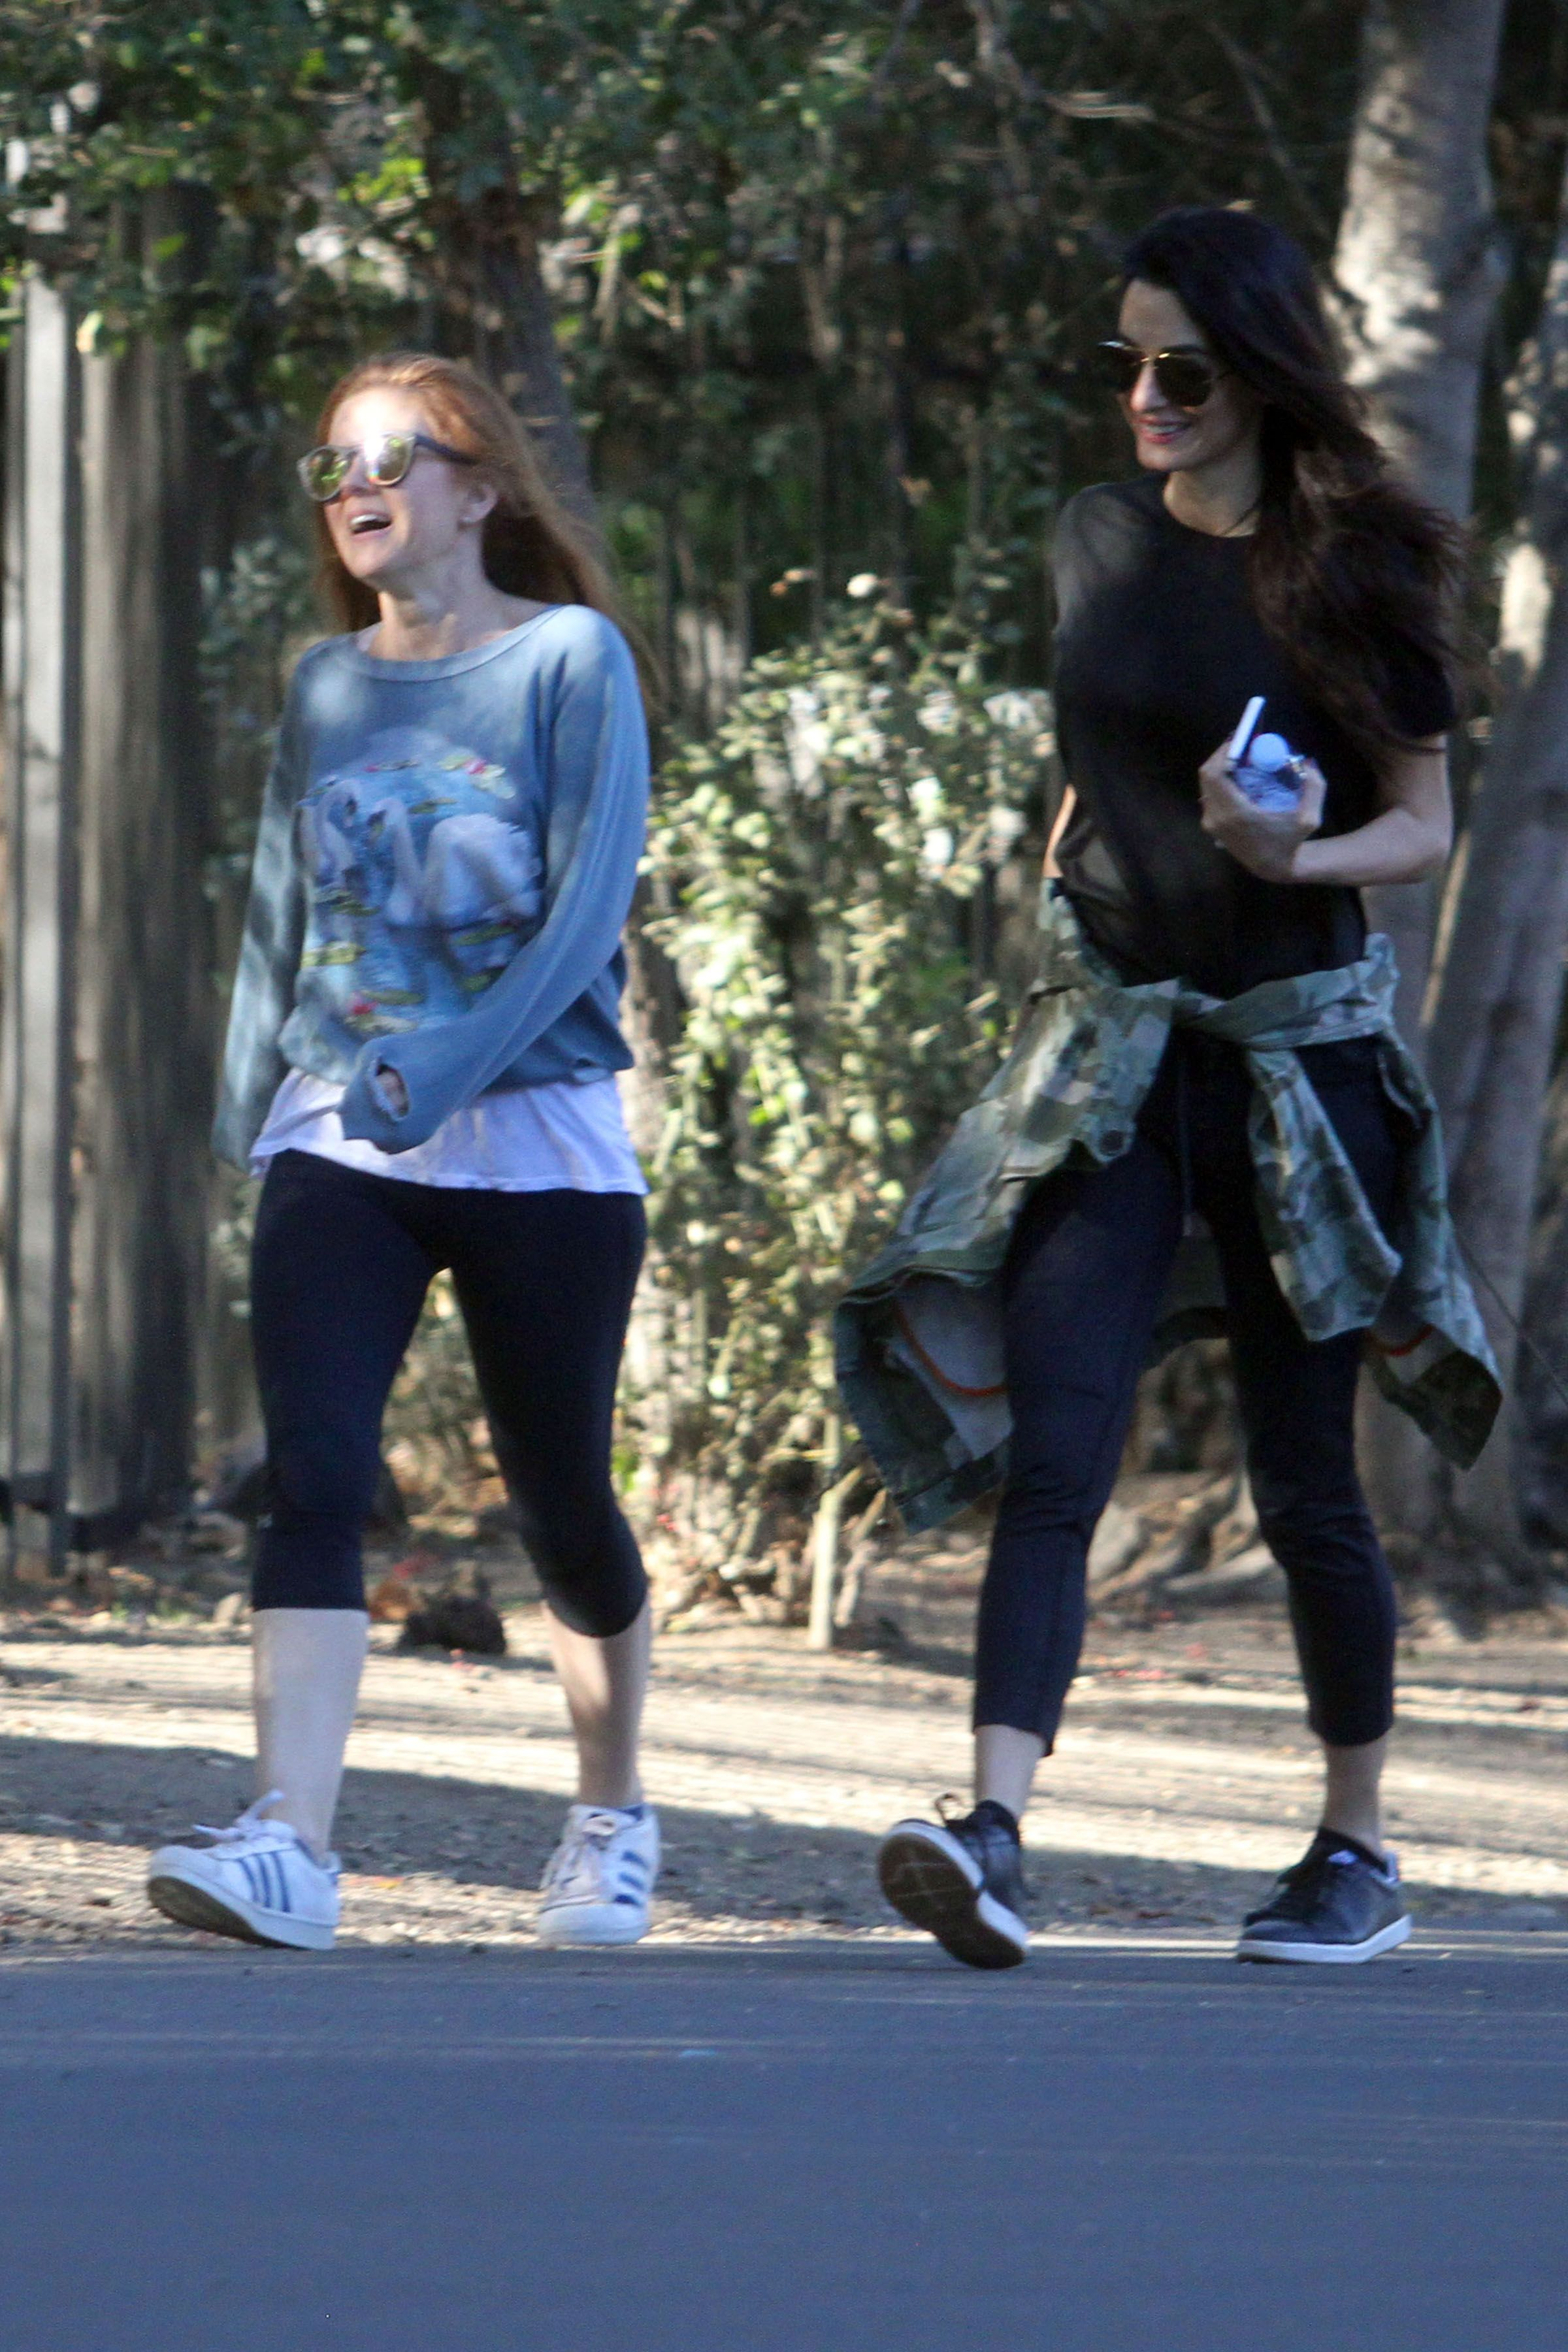 January 26, 2018 Hiking with Isla Fisher at LA's Runyon Canyon.